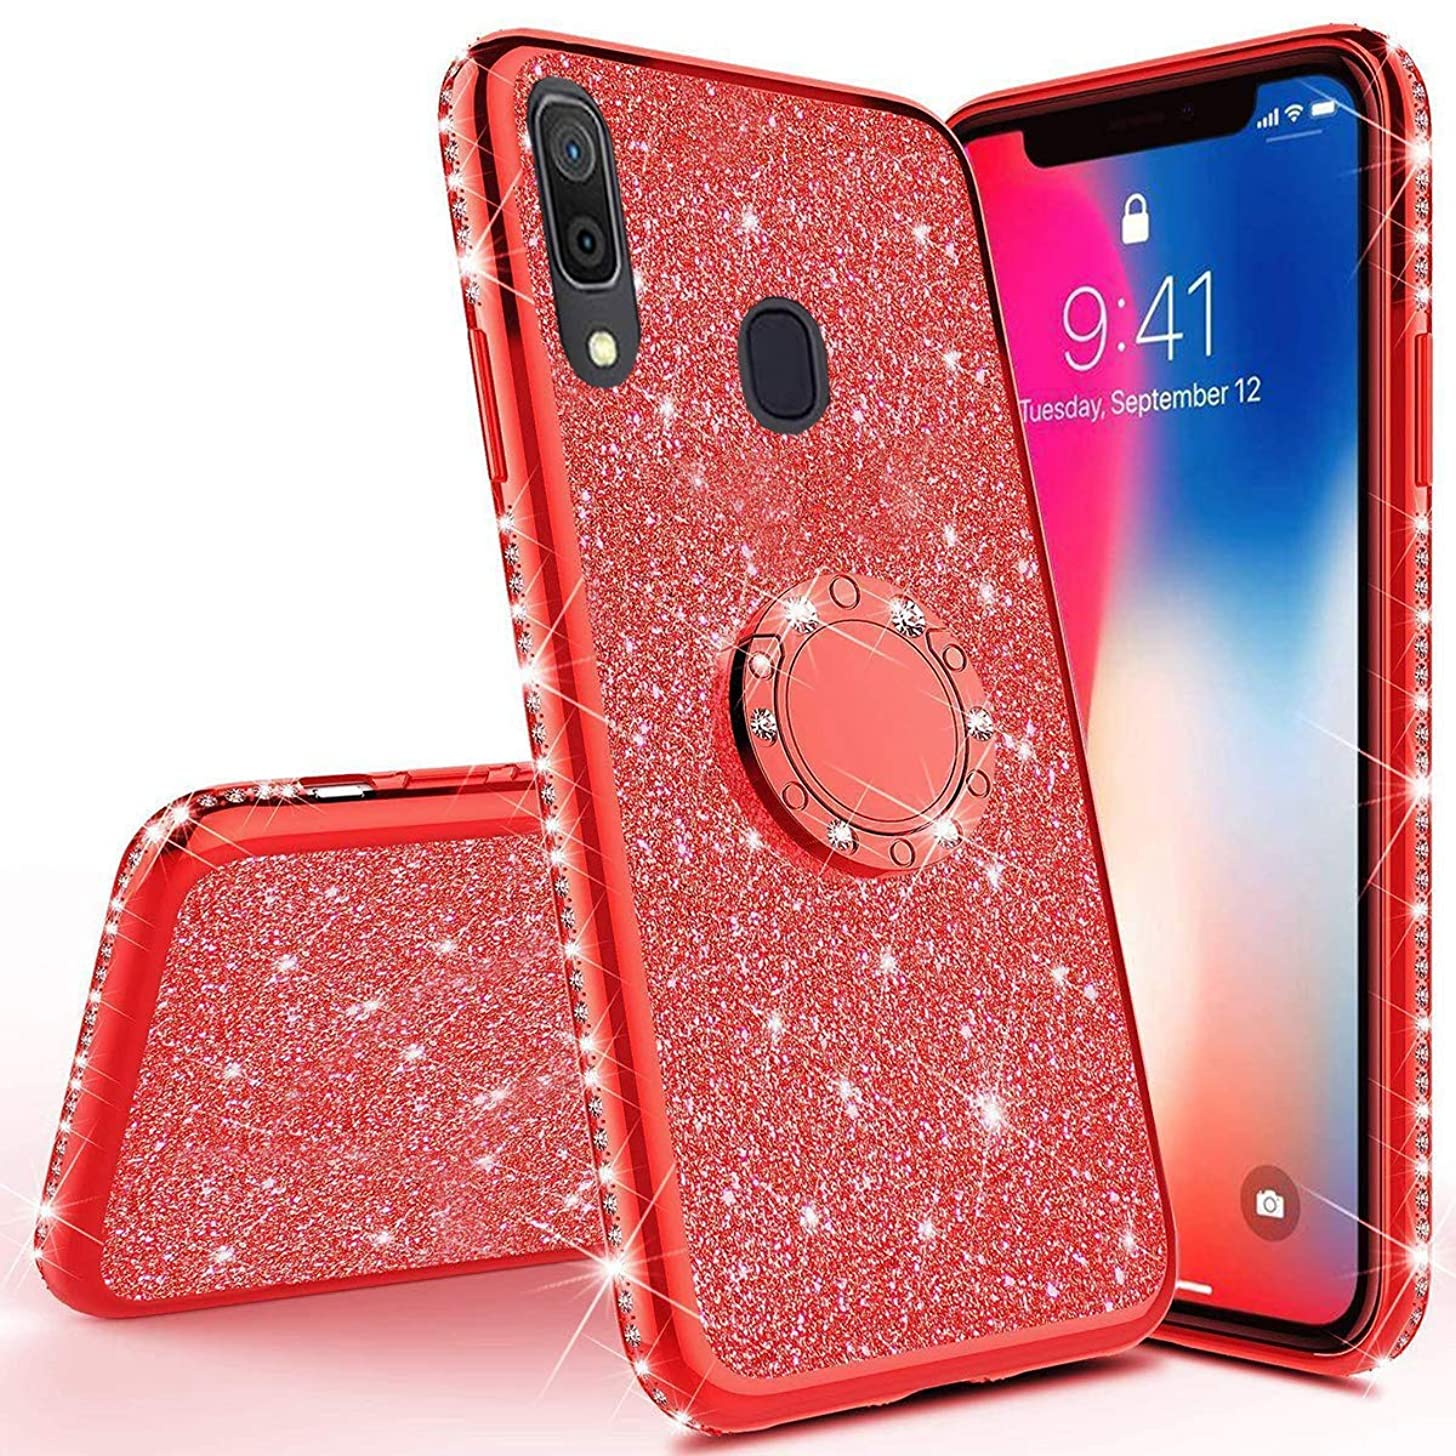 Herbests Compatible with Samsung Galaxy A30 Glitter Case Sparkly Bling Rhinestone Diamond Soft TPU Crystal Clear Flexible Protective Cover with Finger Ring Grip Holder Stand,Red